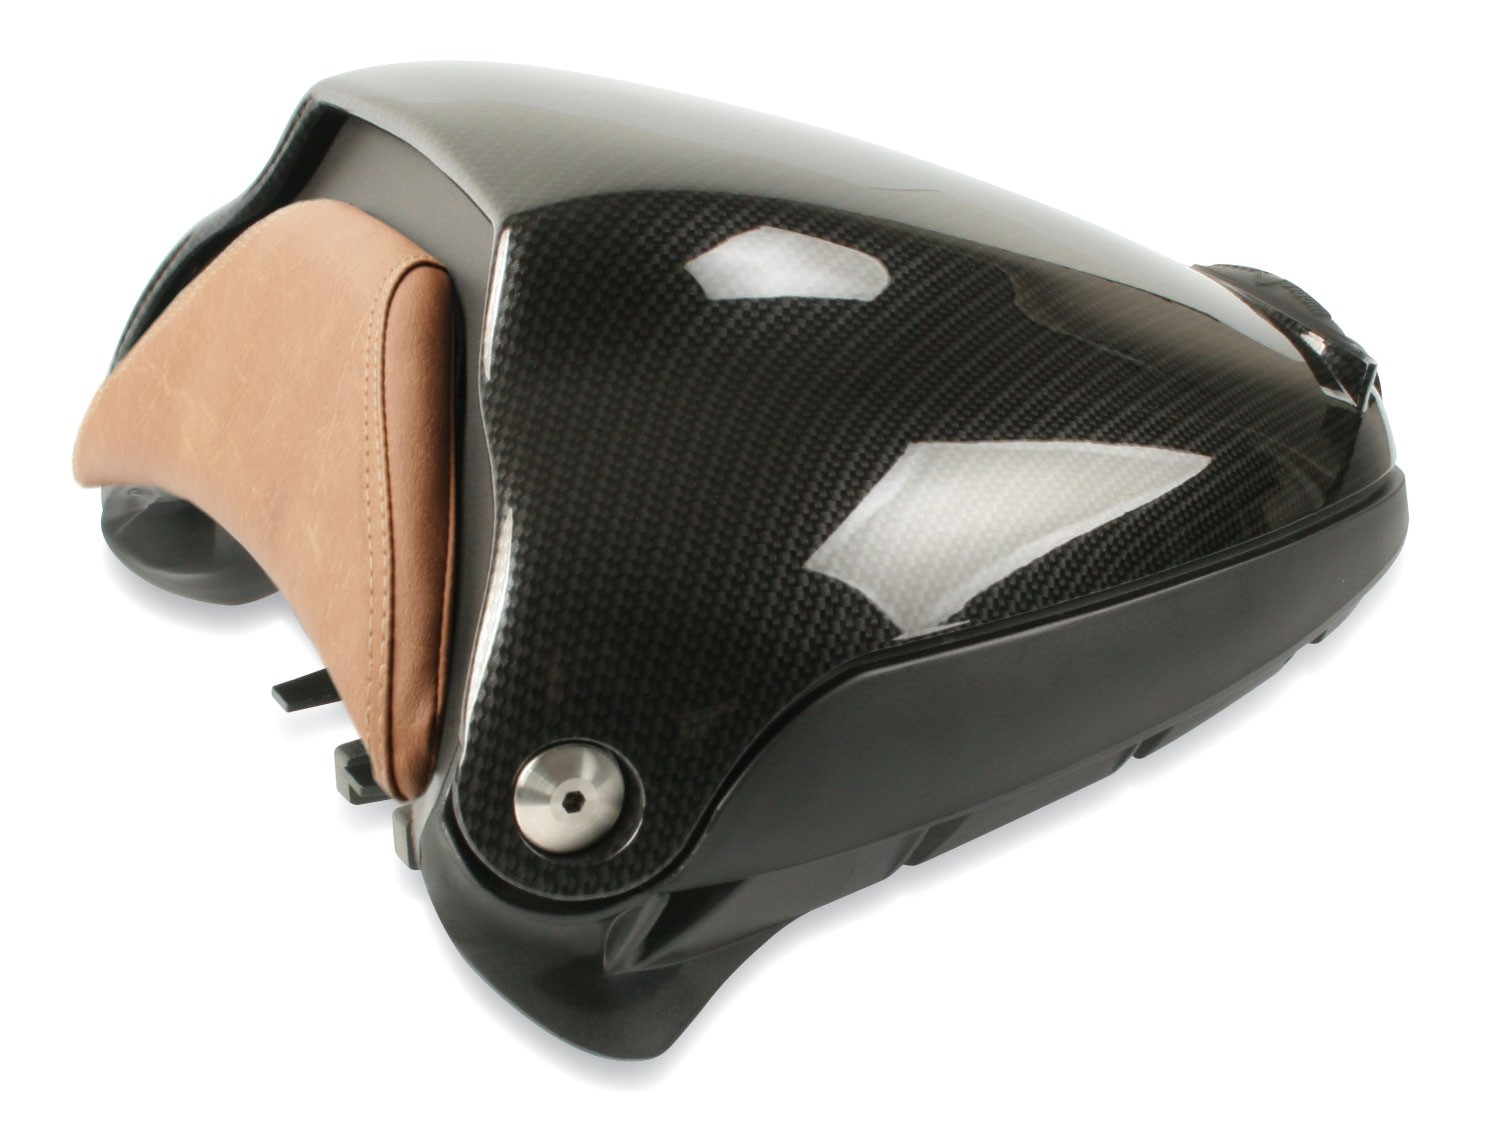 Storage Pod, BMW R nine T / R nine T Scrambler, faux carbon fiber finish, tan pad.